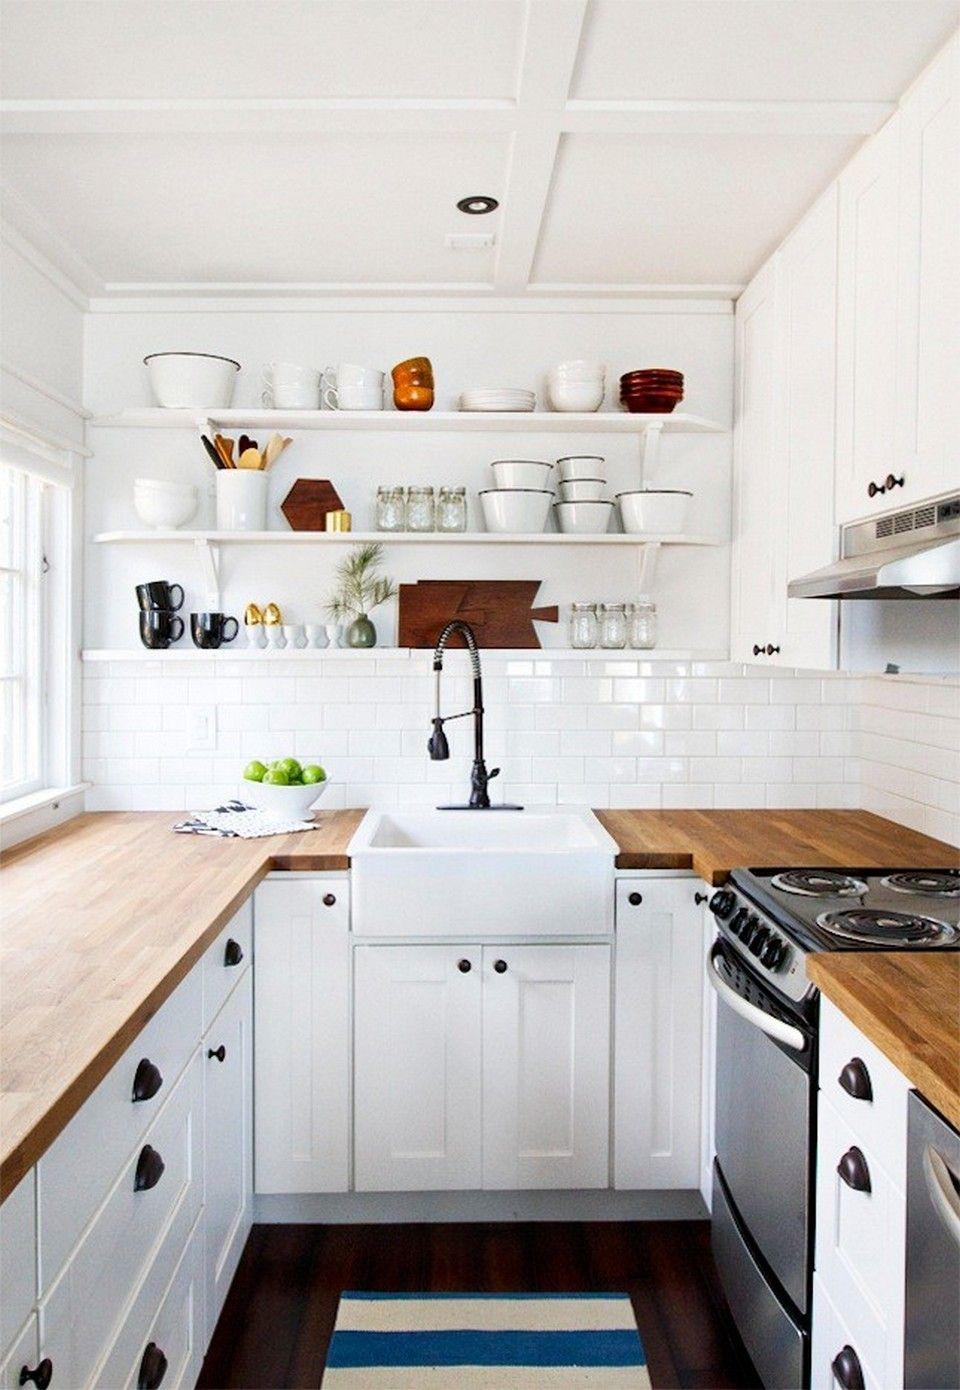 99+ Small Kitchen Remodel and Amazing Storage Hacks on A Budget ...